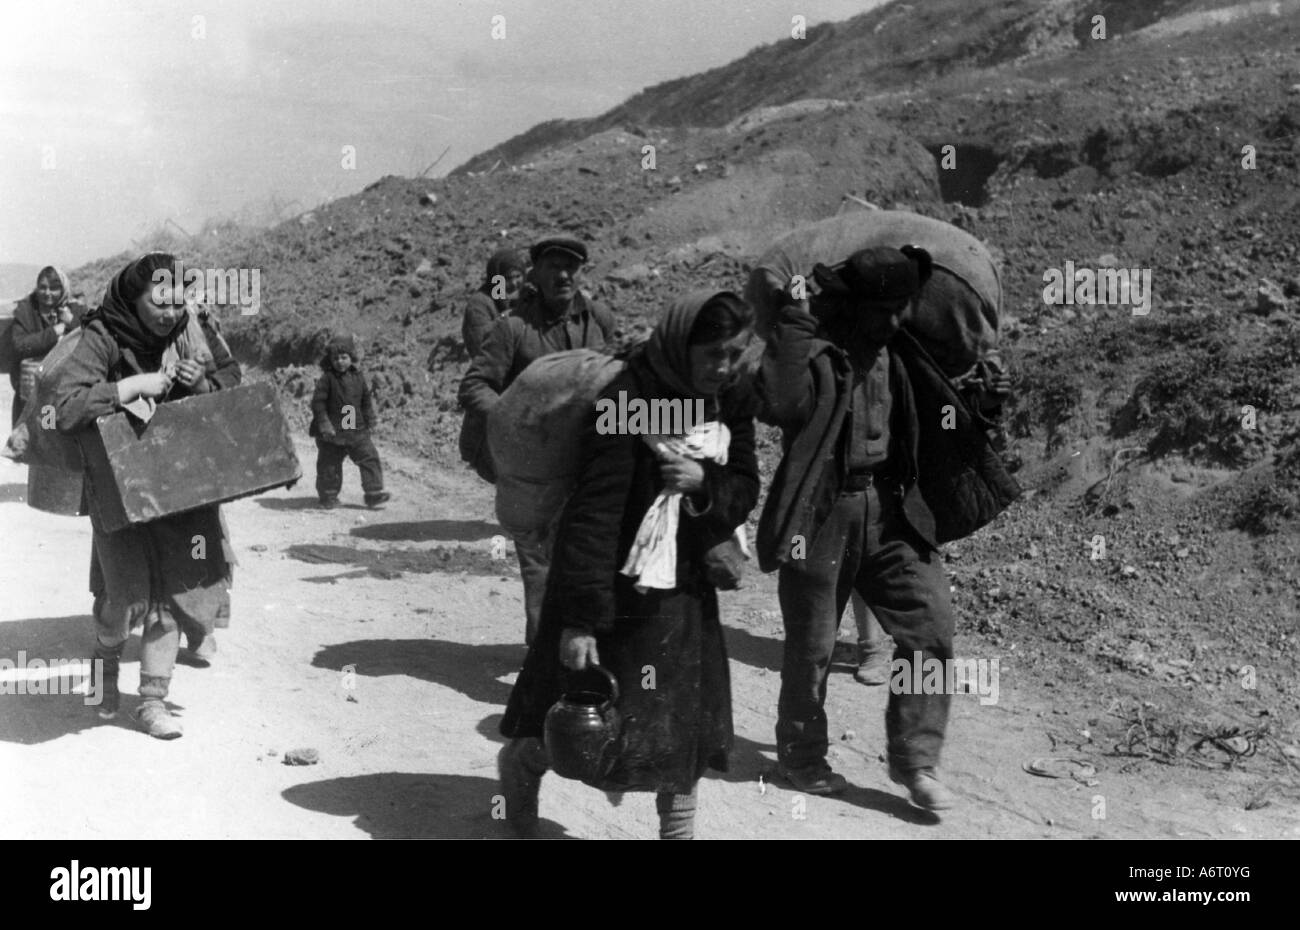 events, Second World War / WWII, refugees, Russia 1941 / 1942, Stock Photo